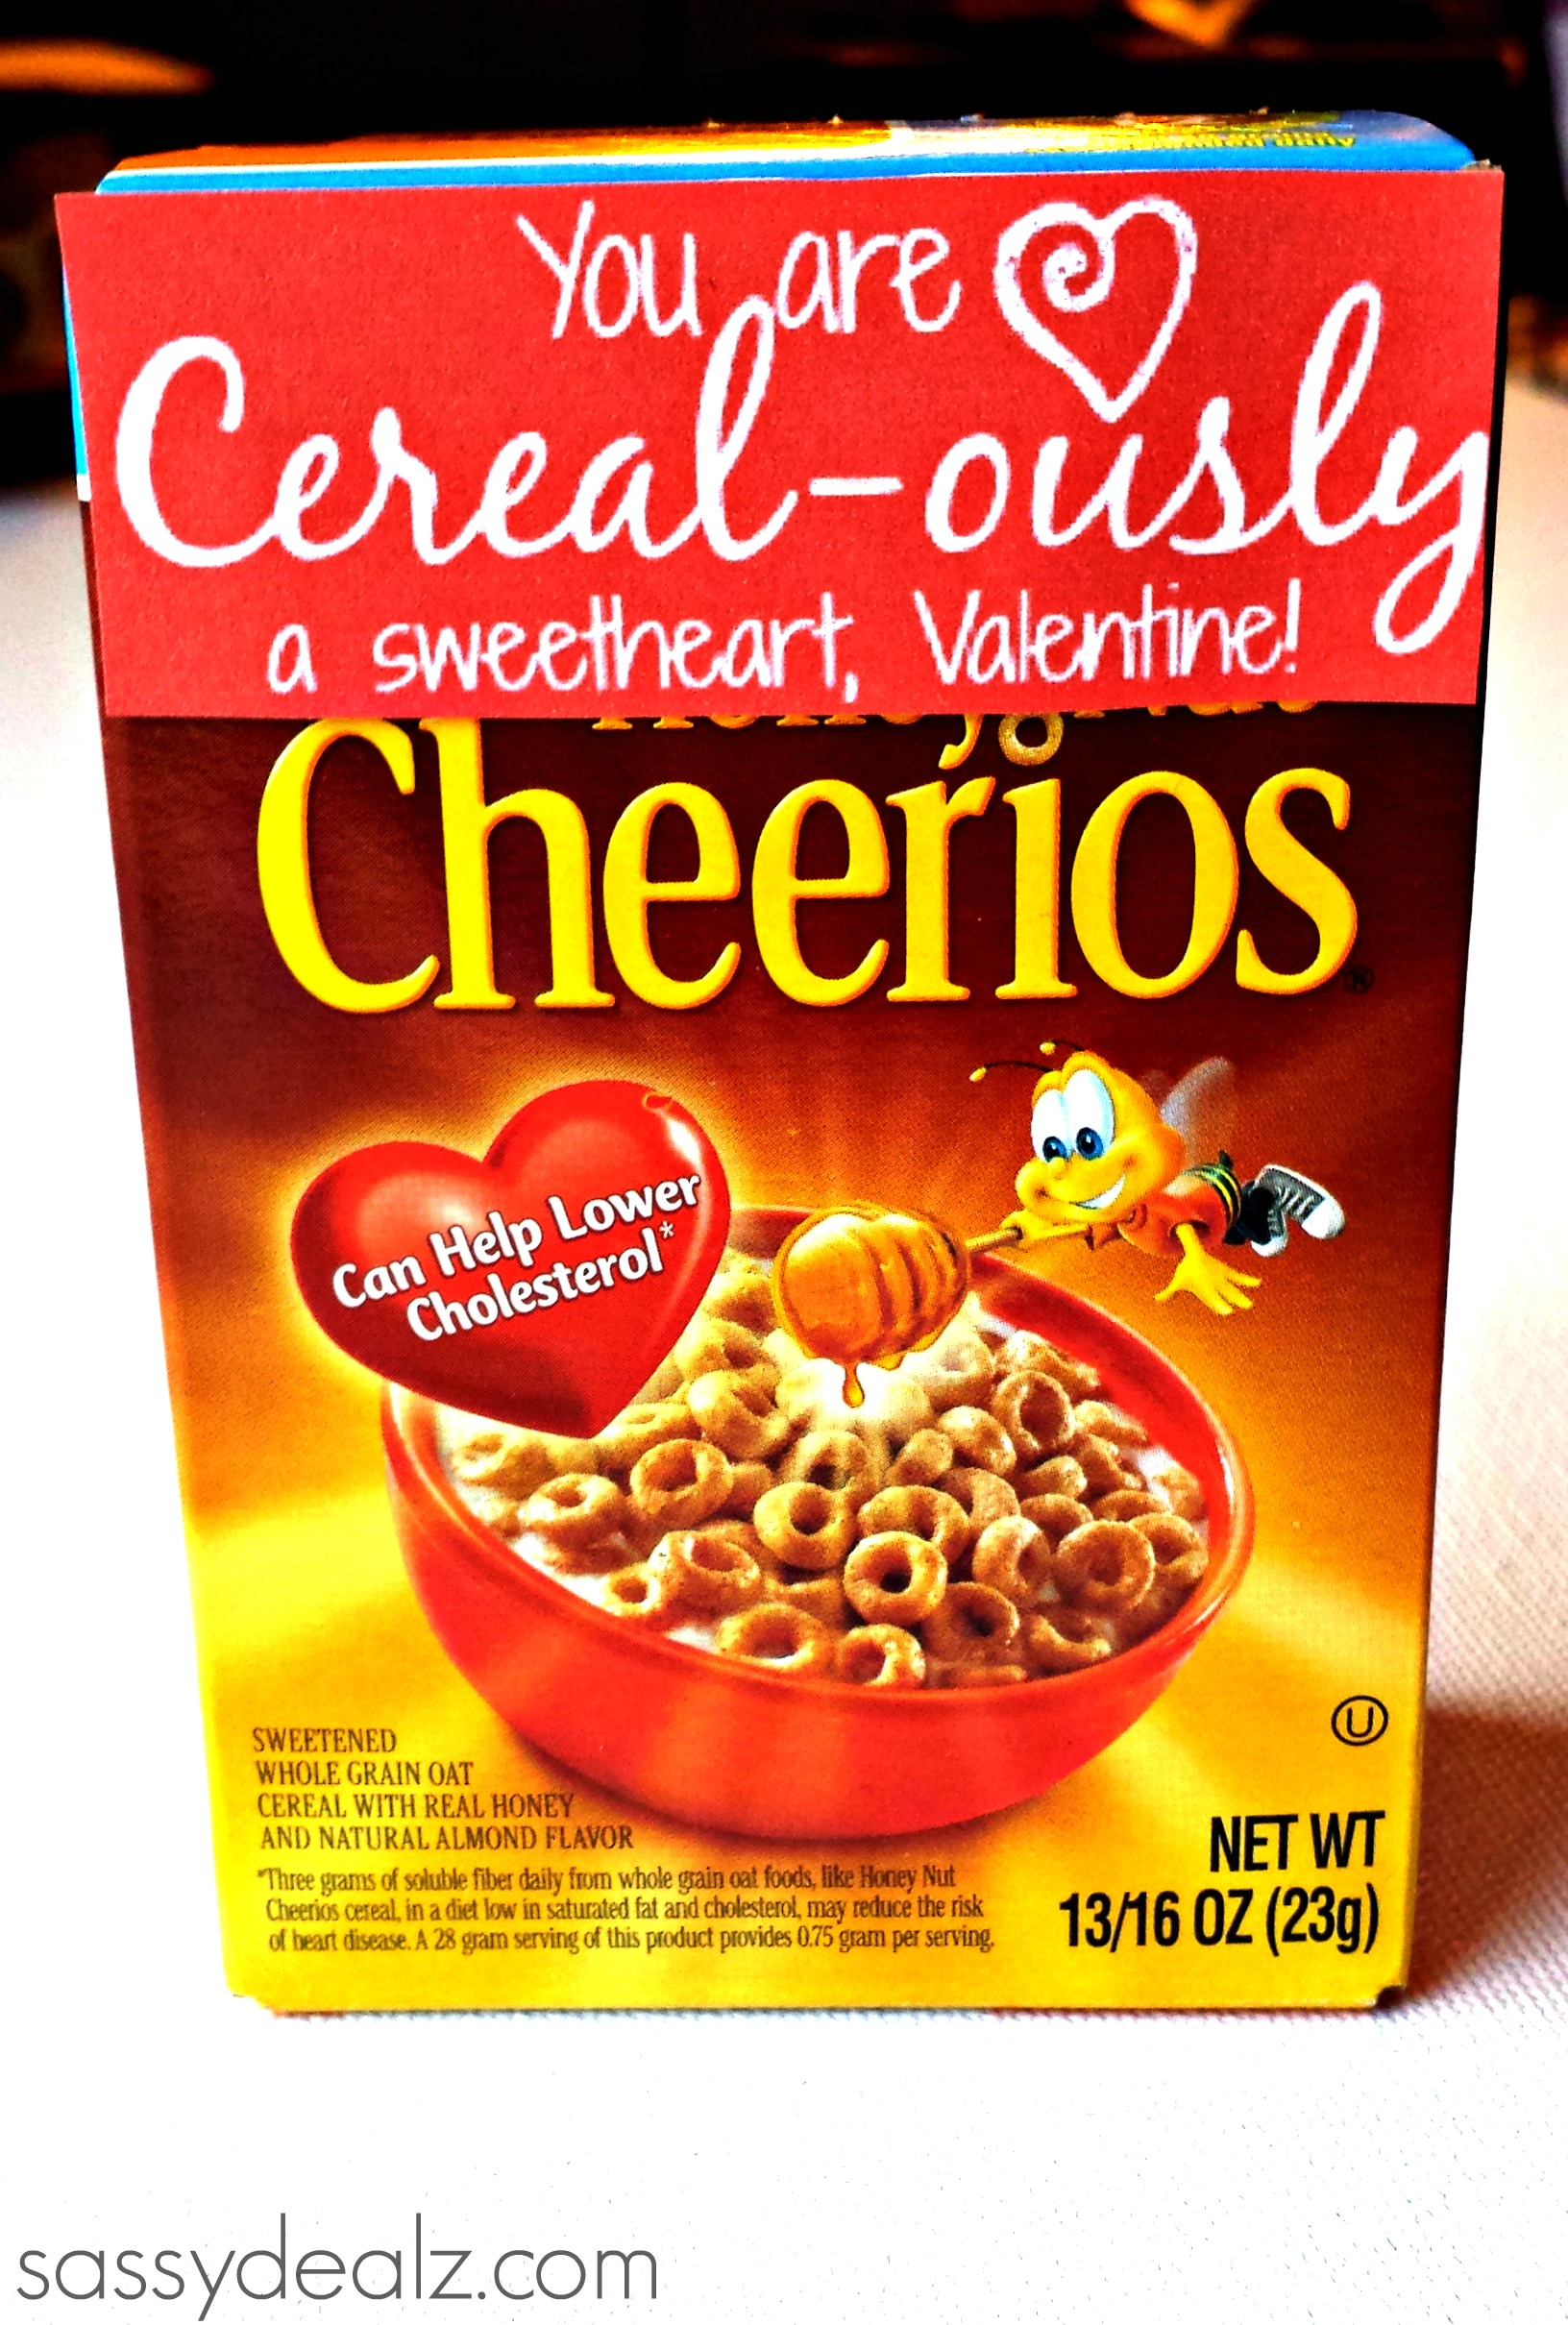 cereal-ously valentine gift